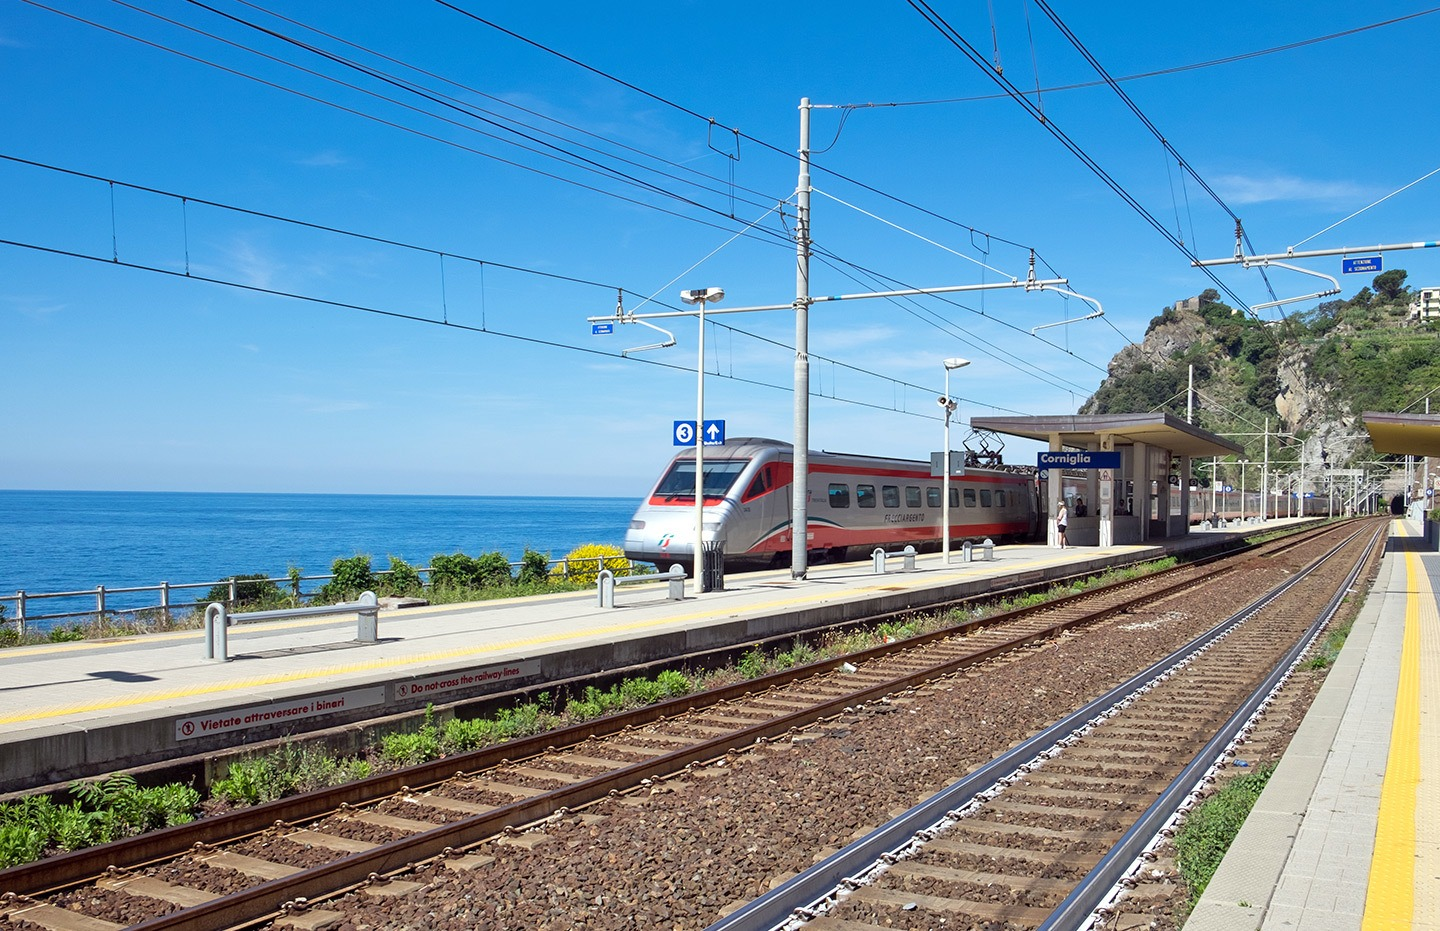 Corniglia's train station in the Cinque Terre